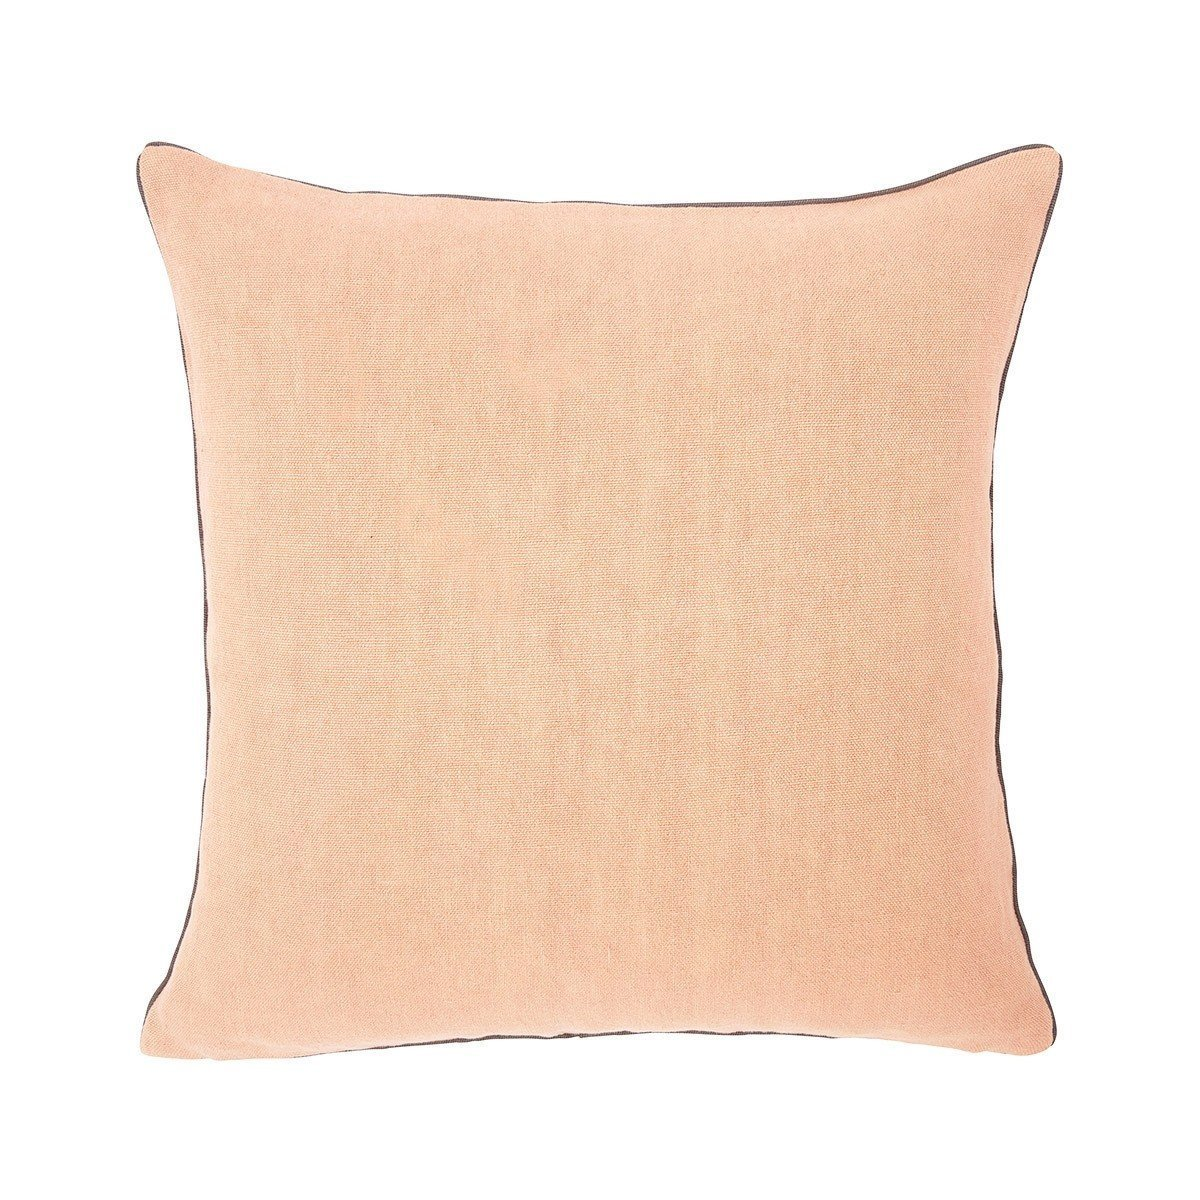 Pigment Peche Peach Throw Pillow by Iosis | Fig Linens - Front